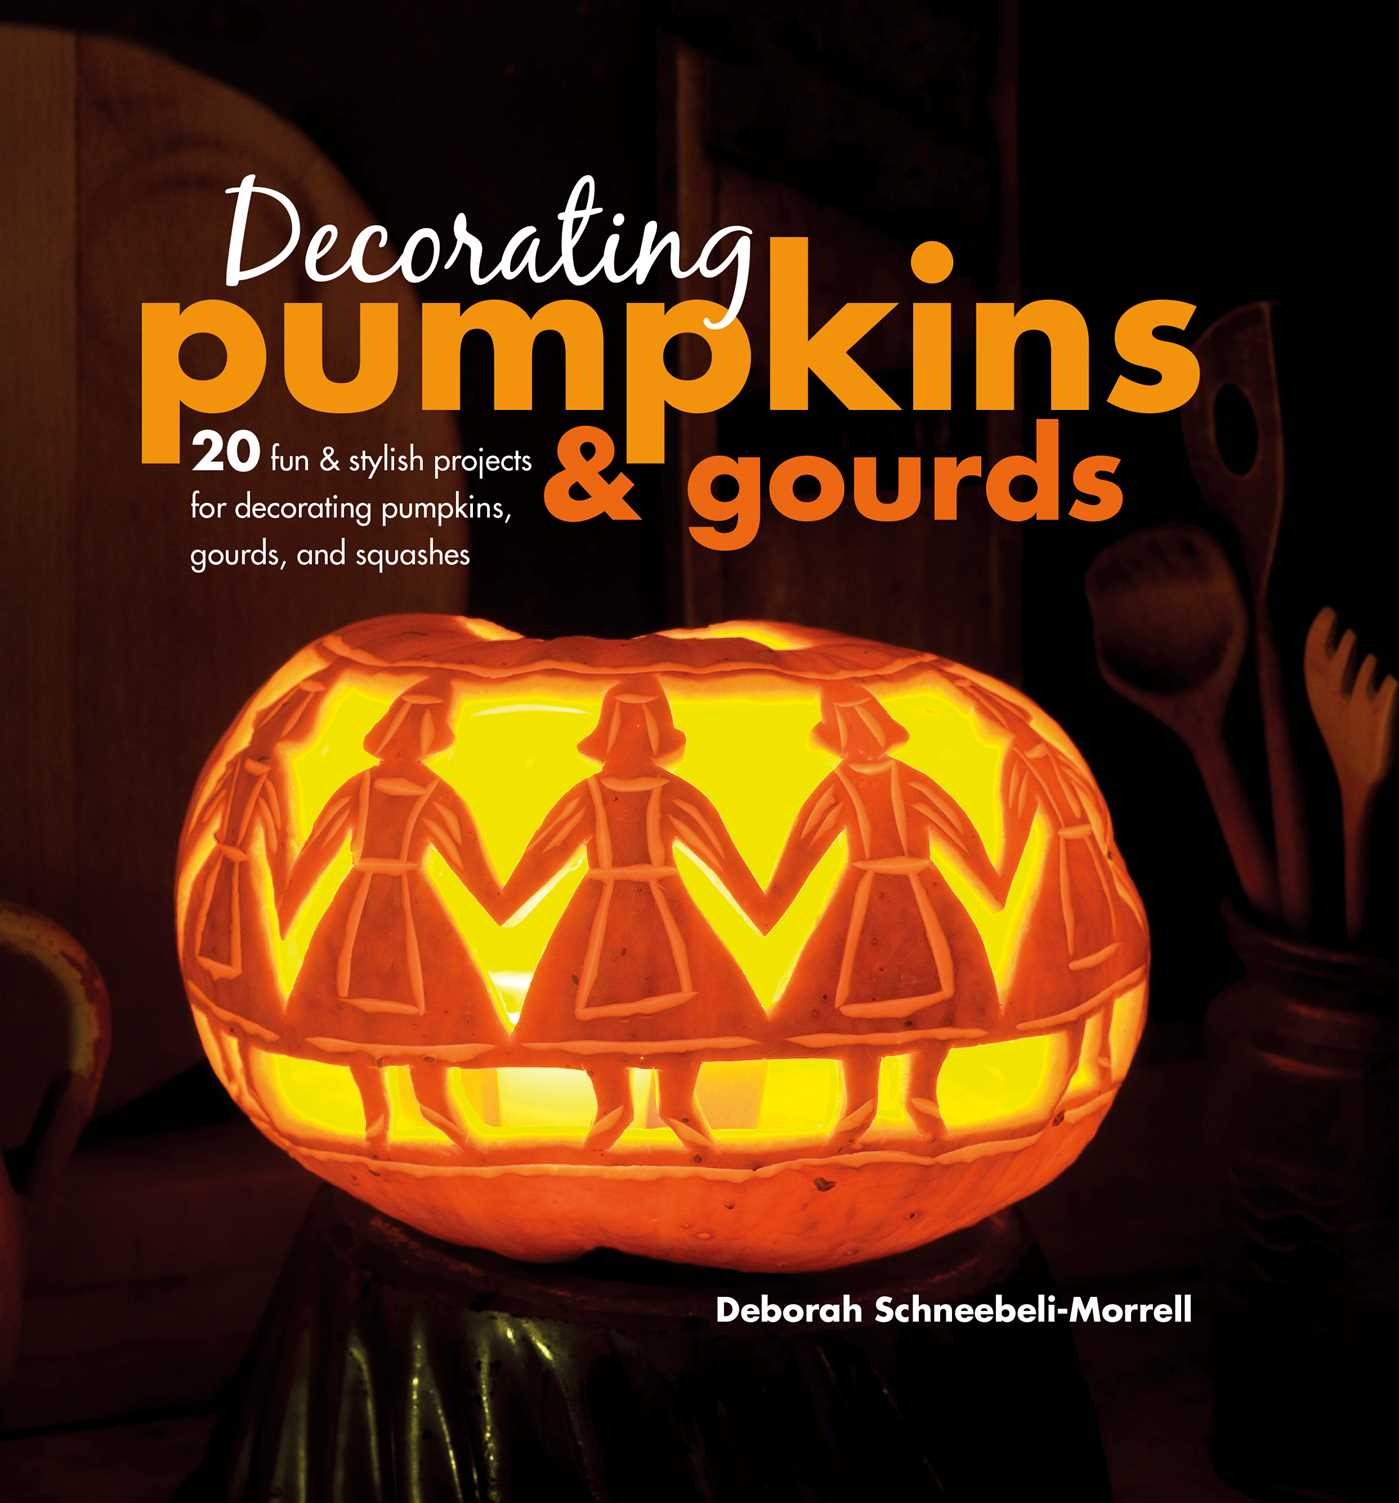 Decoraating Pumpkins